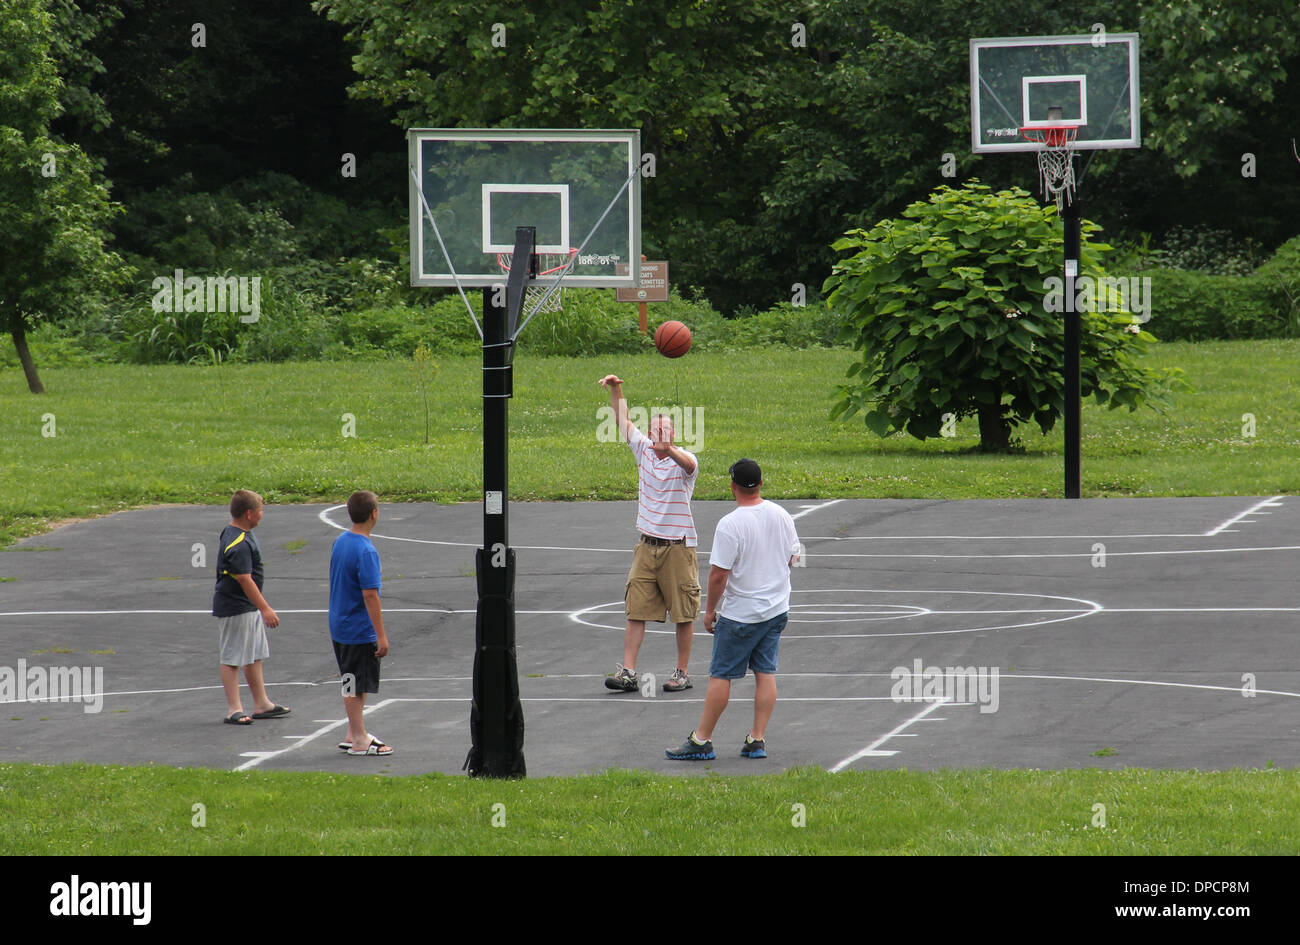 Young men playing basketball in park Indiana - Stock Image